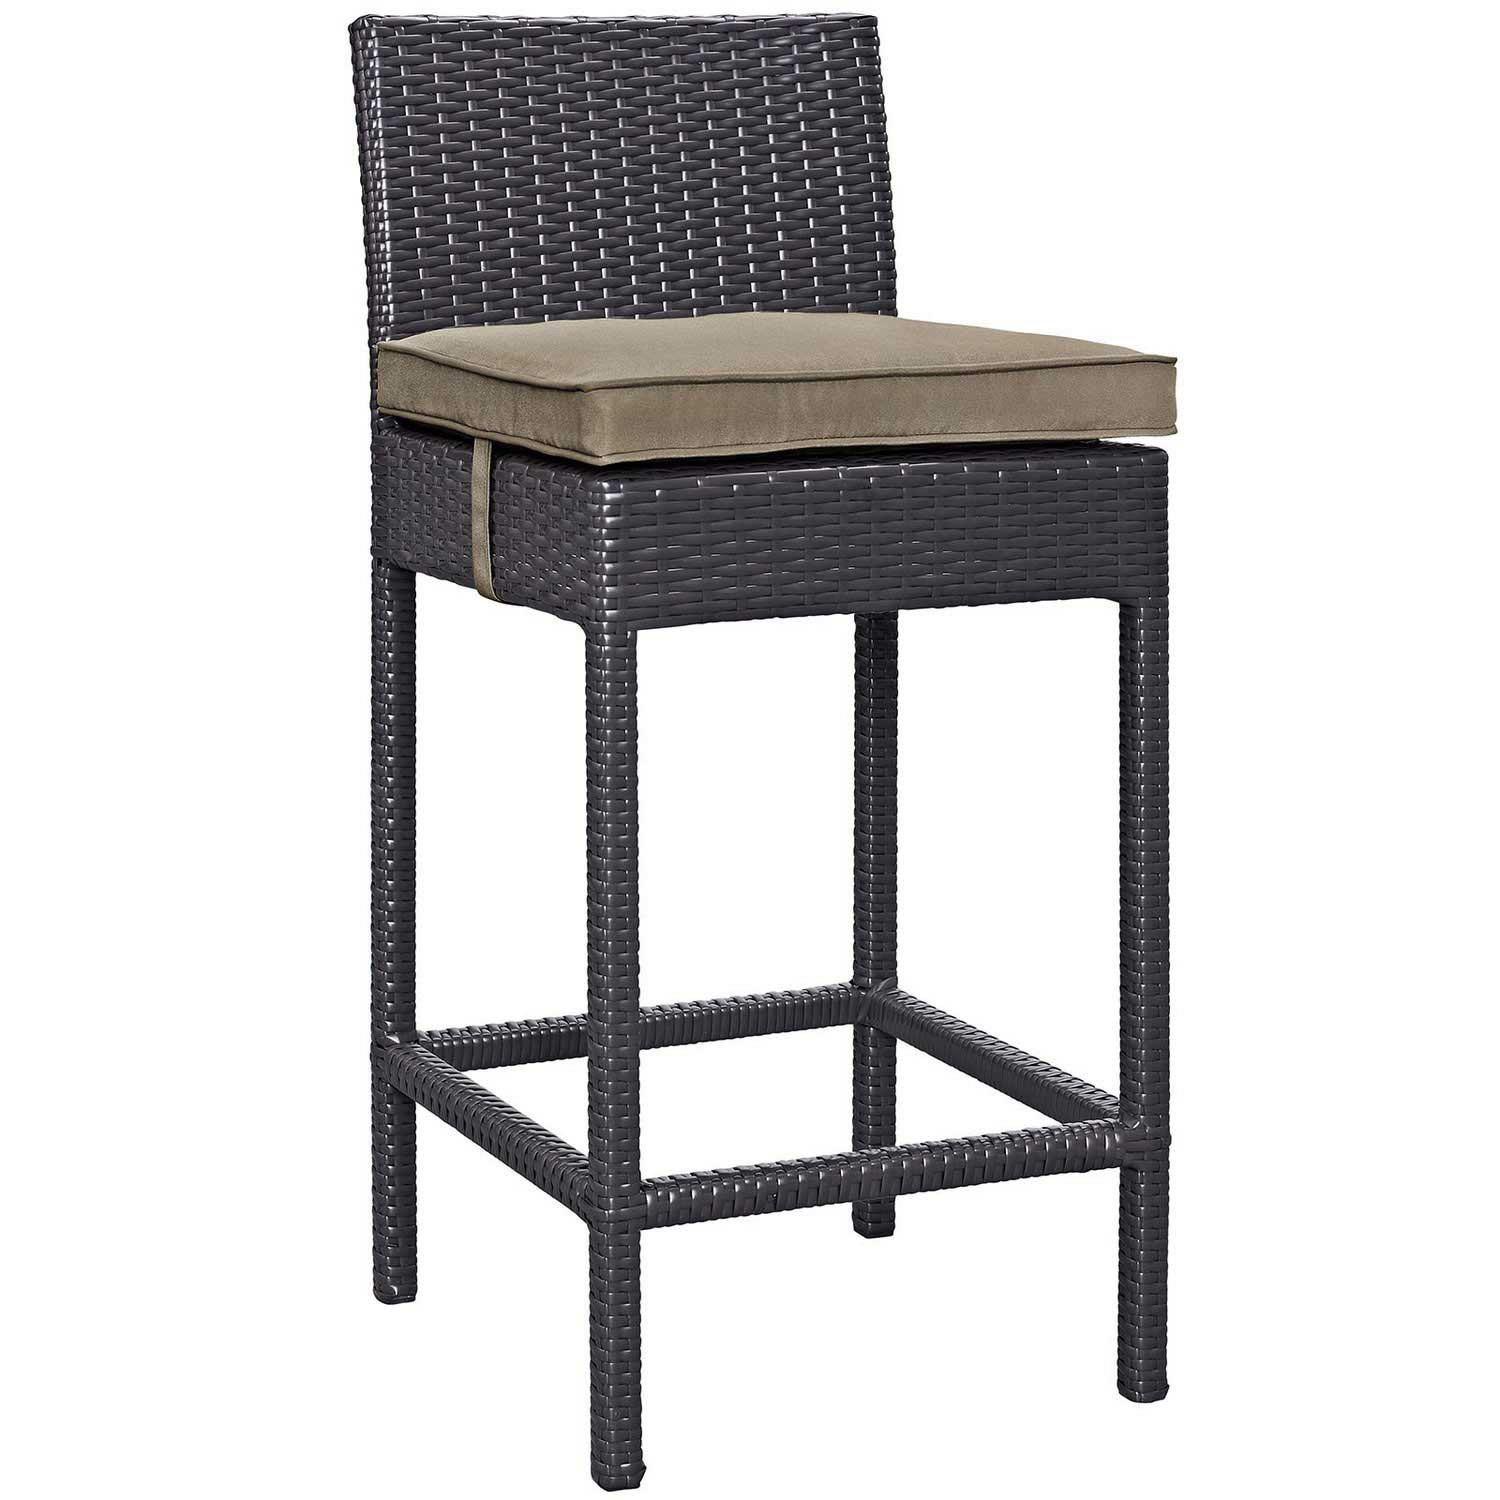 Modway Convene Outdoor Patio Fabric Bar Stool - Espresso Mocha